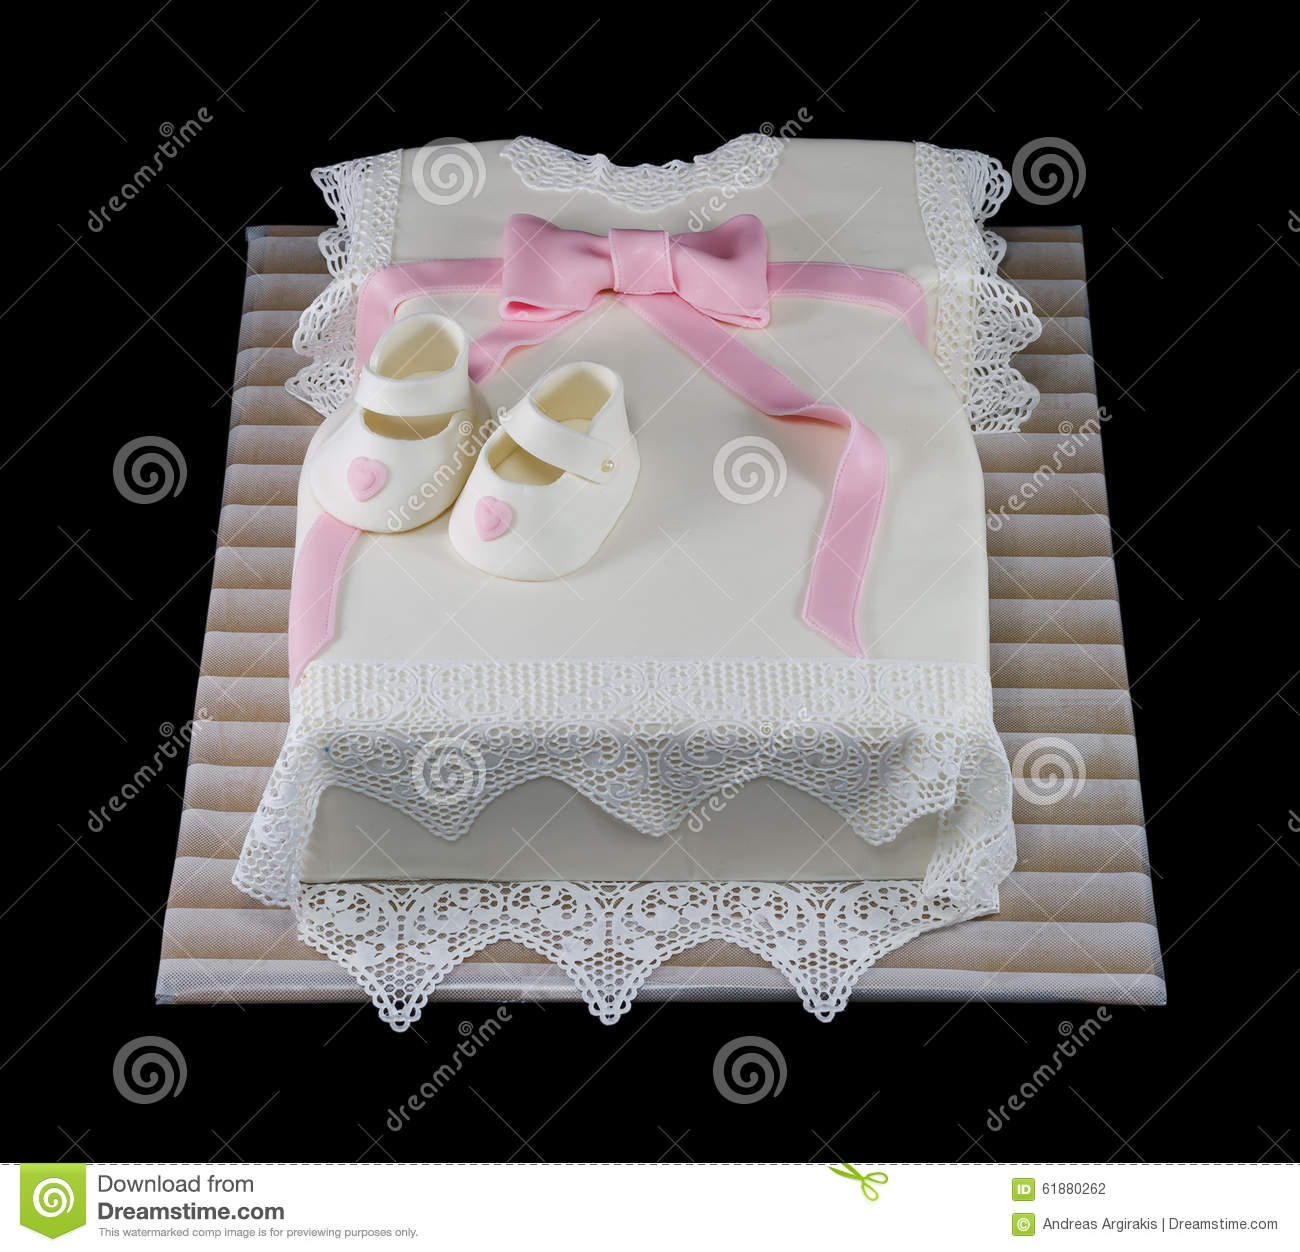 One White Cake In The Shape Of A Baby Dress Stock Photo Image Of